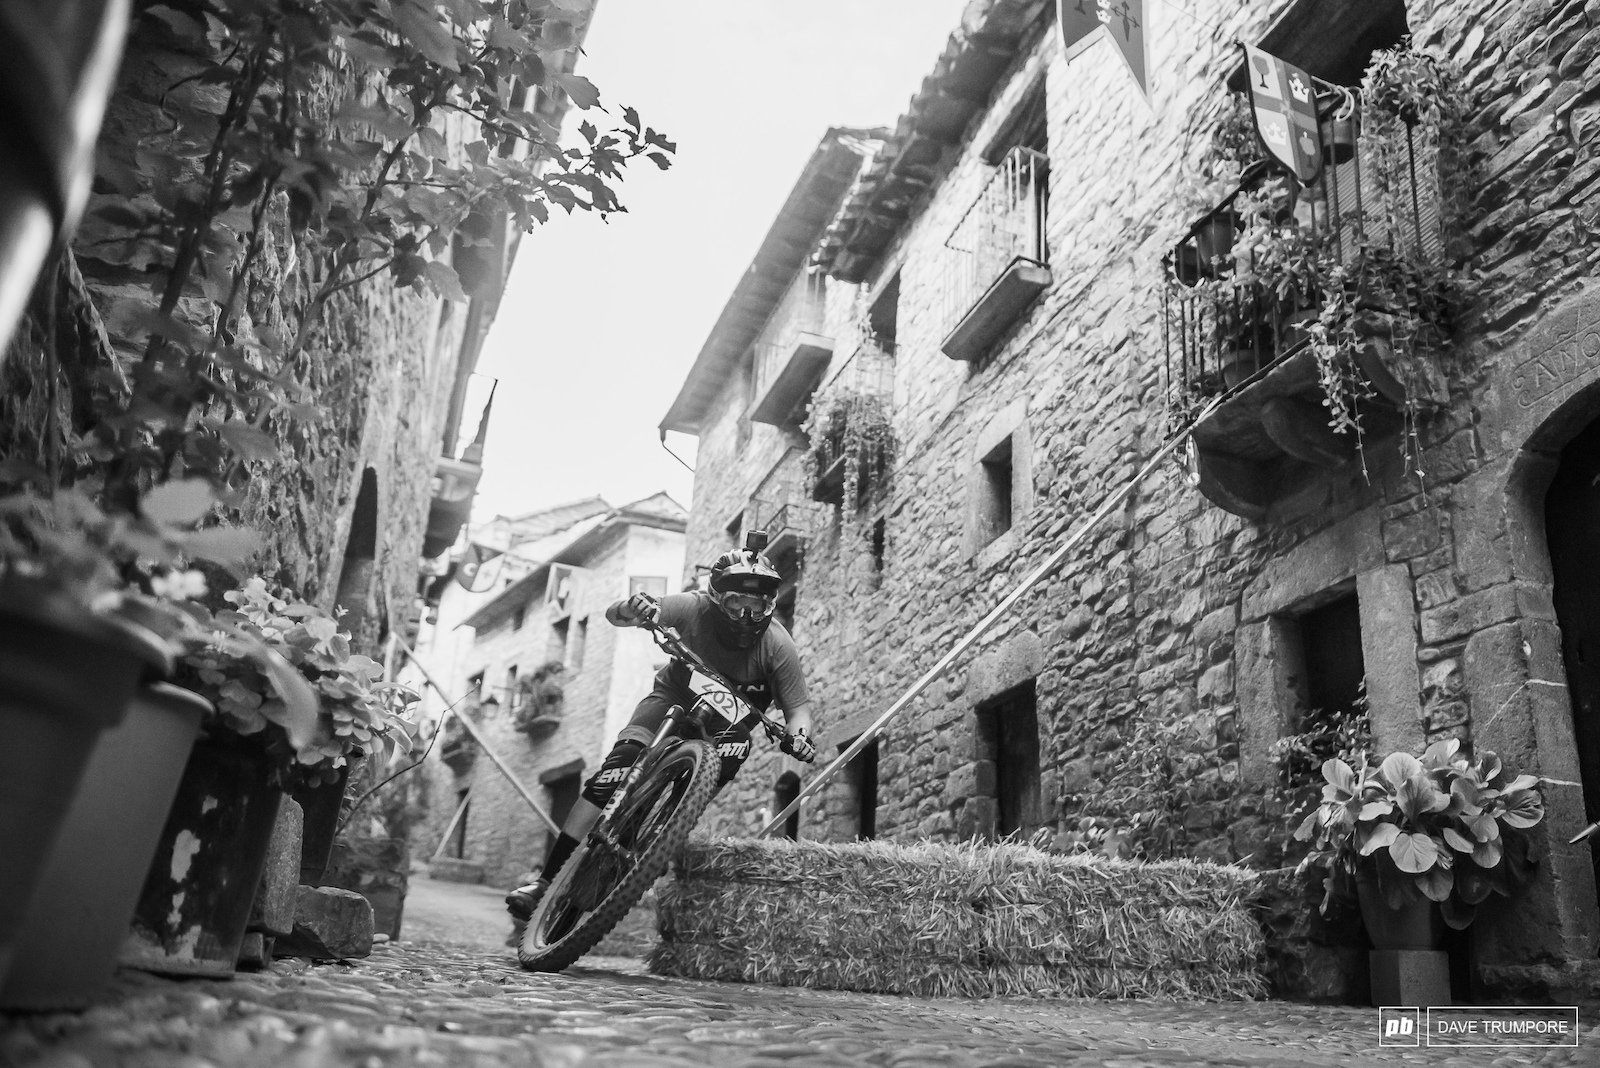 Martha Gill attacking the cobblestone slalom during Friday s prologue.